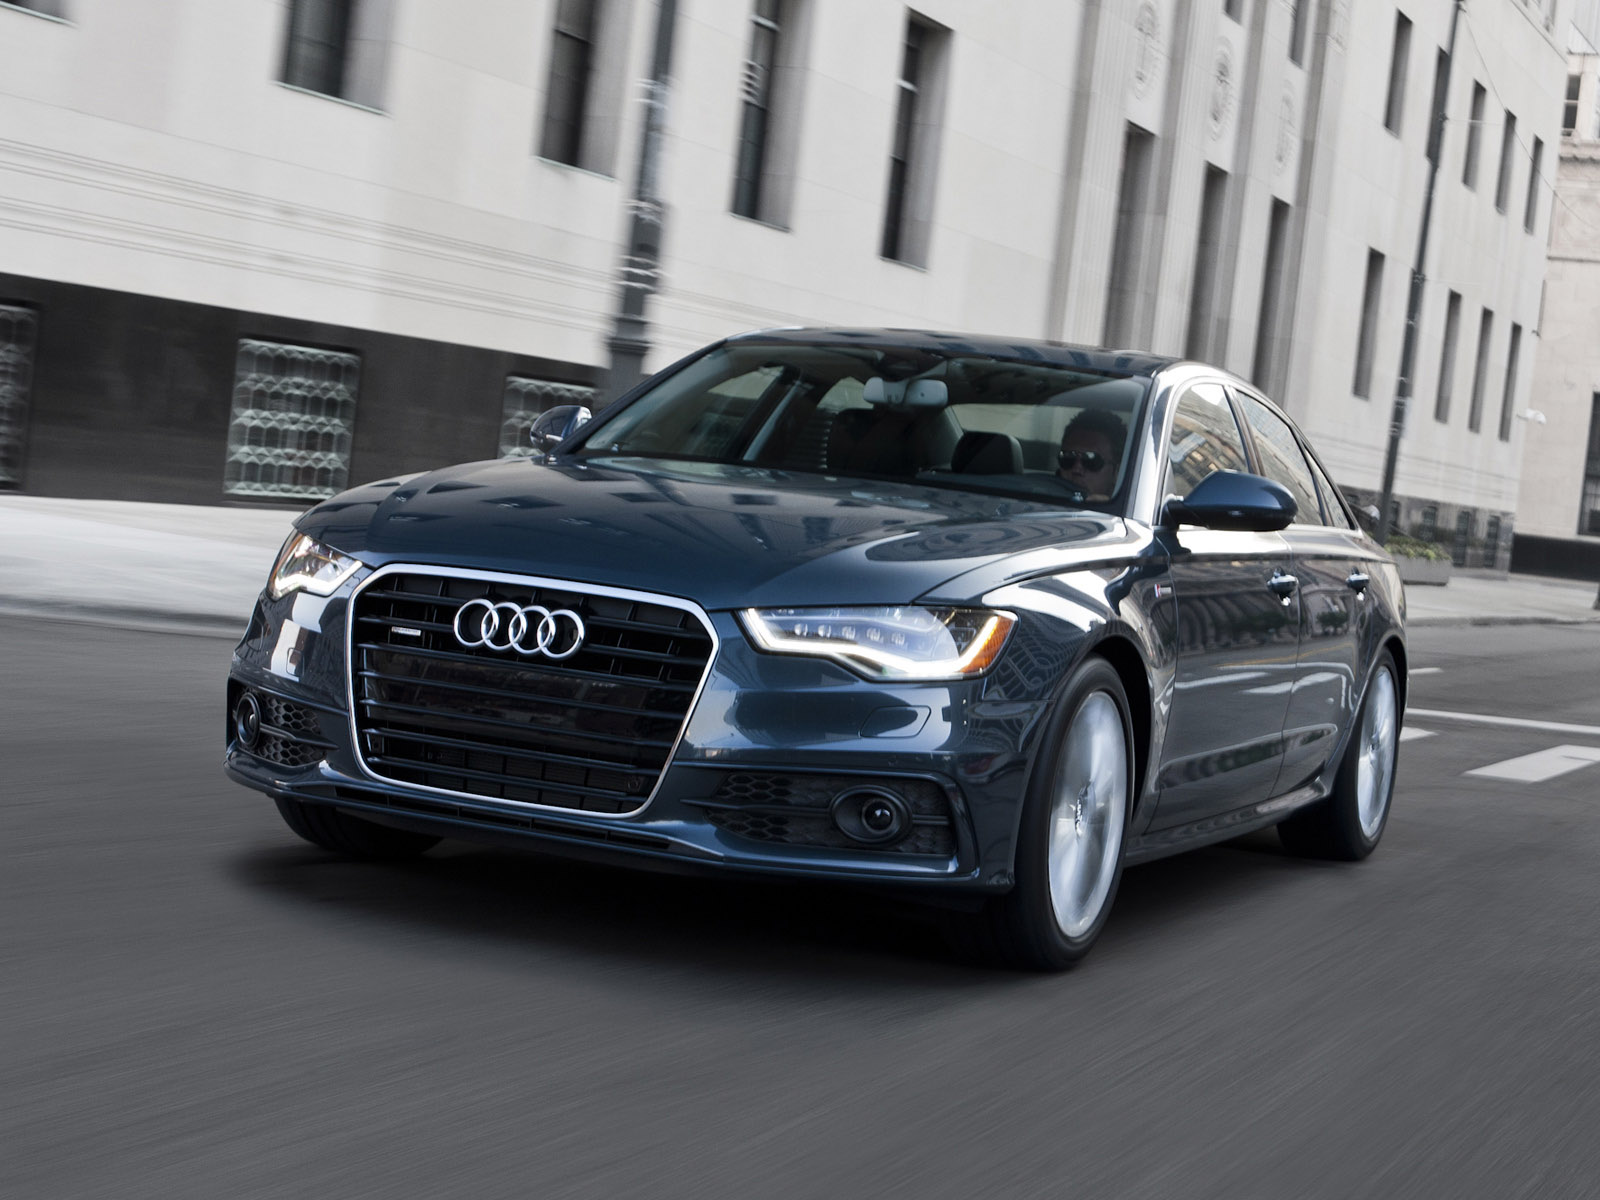 audi a6 3 0t s line sedan usa 2011 audi a6 3 0t s line sedan usa 2011 photo 07 car in pictures. Black Bedroom Furniture Sets. Home Design Ideas